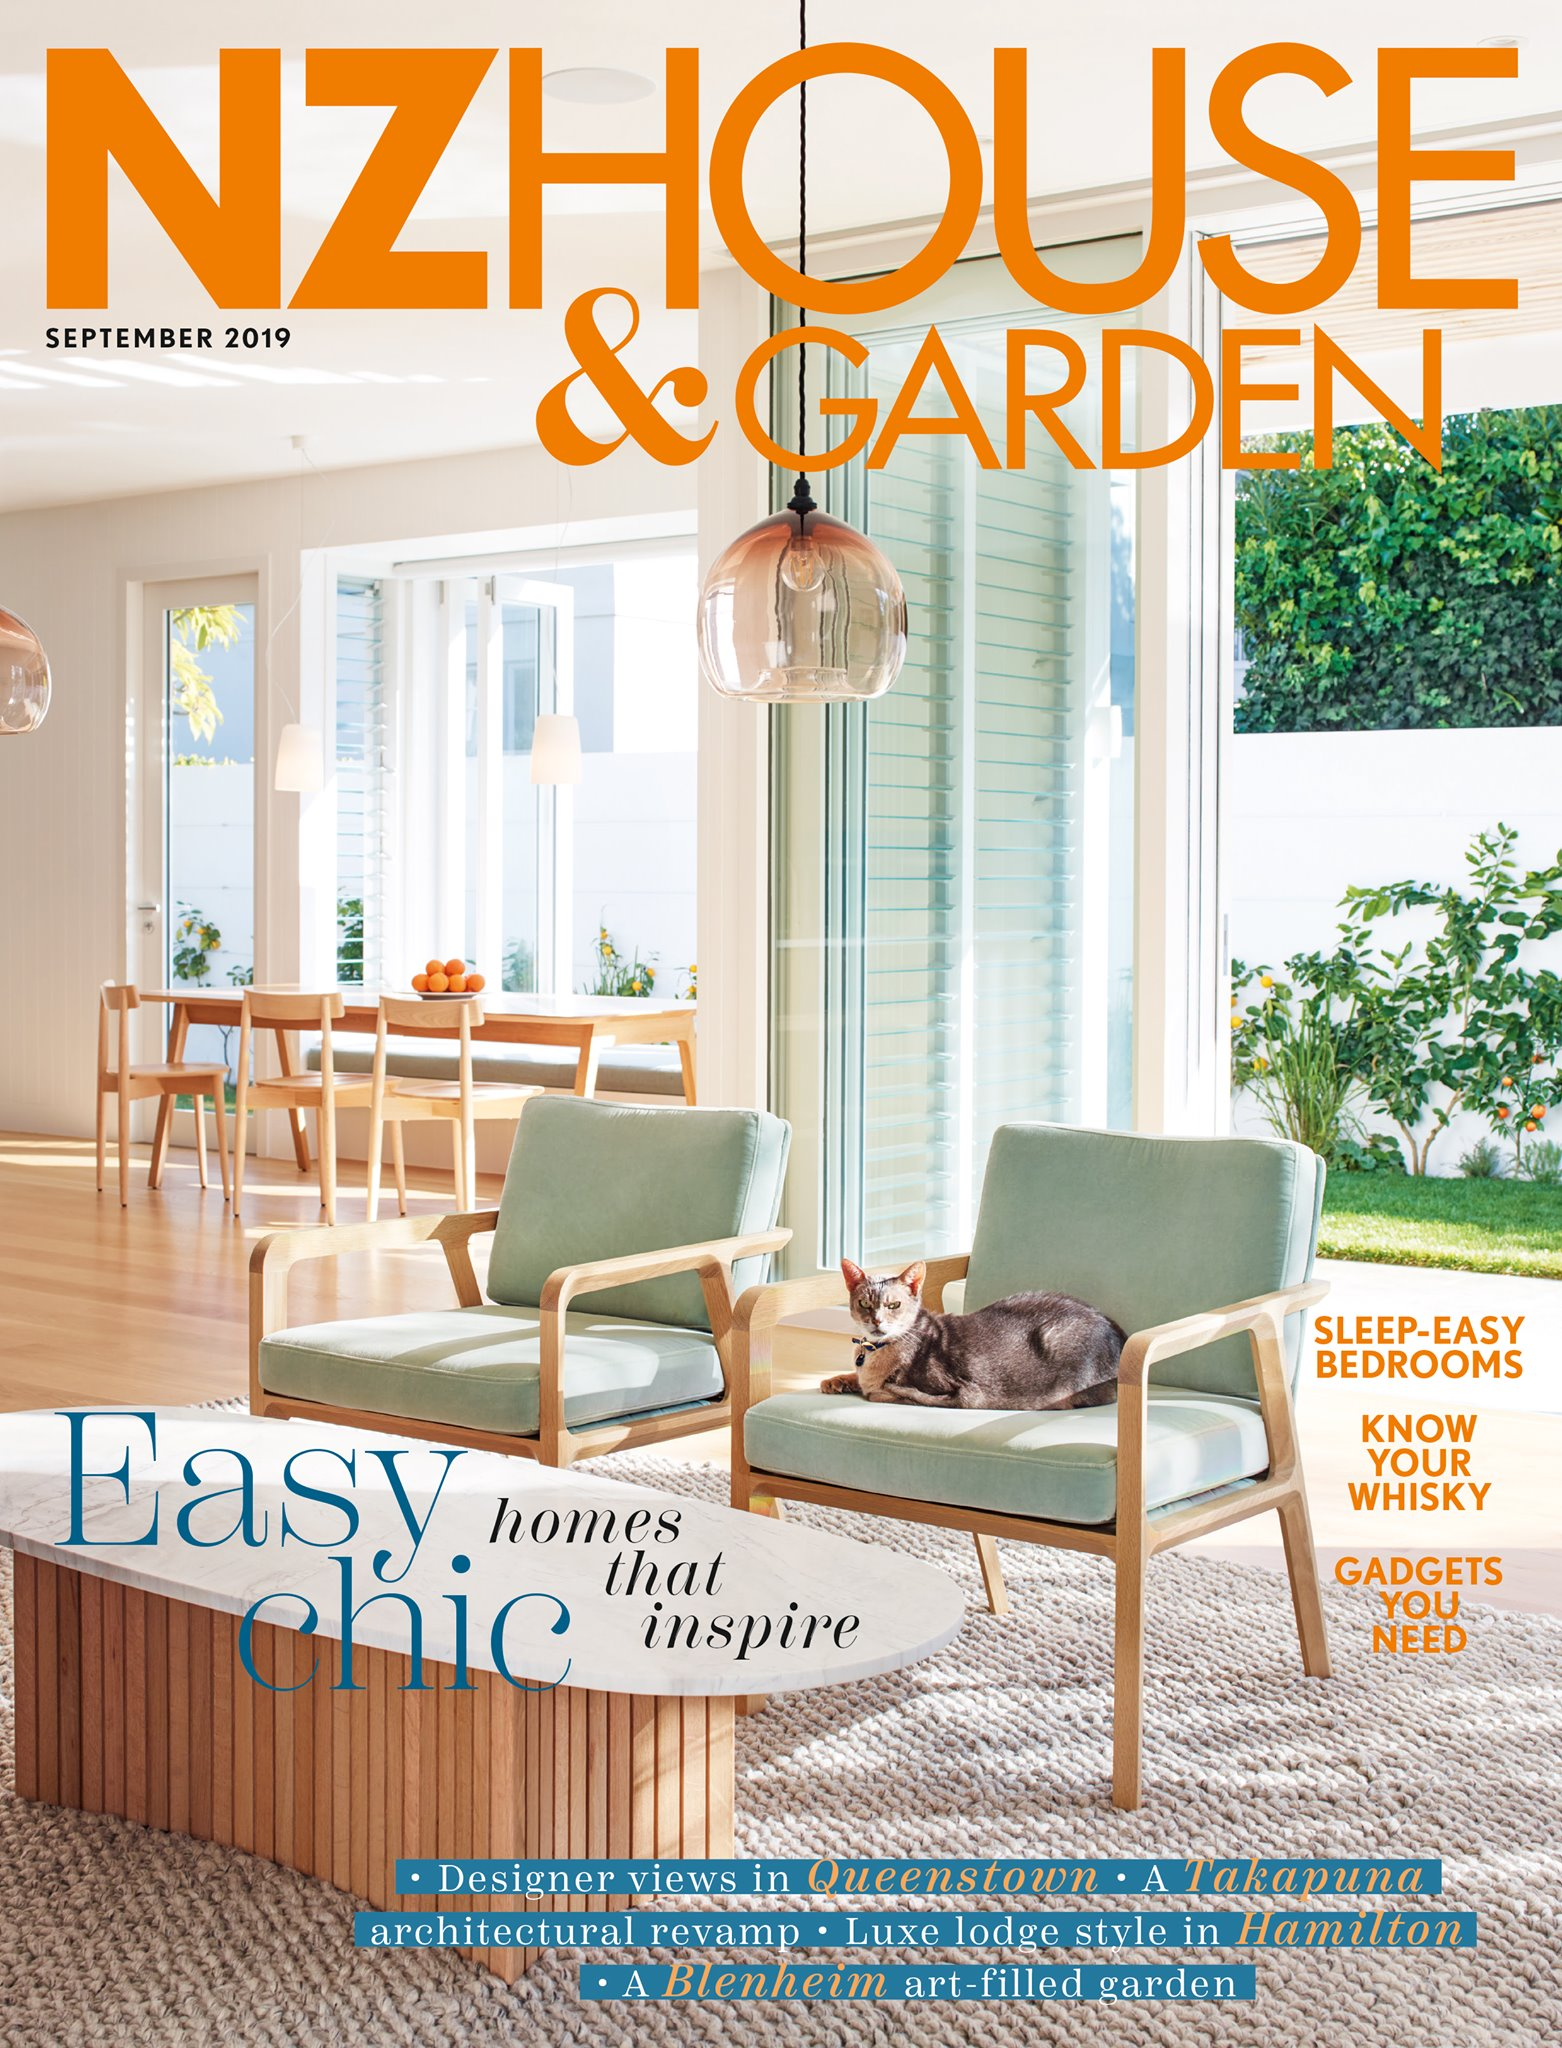 NZ HOUSE & GARDEN SEPTEMBER 2019